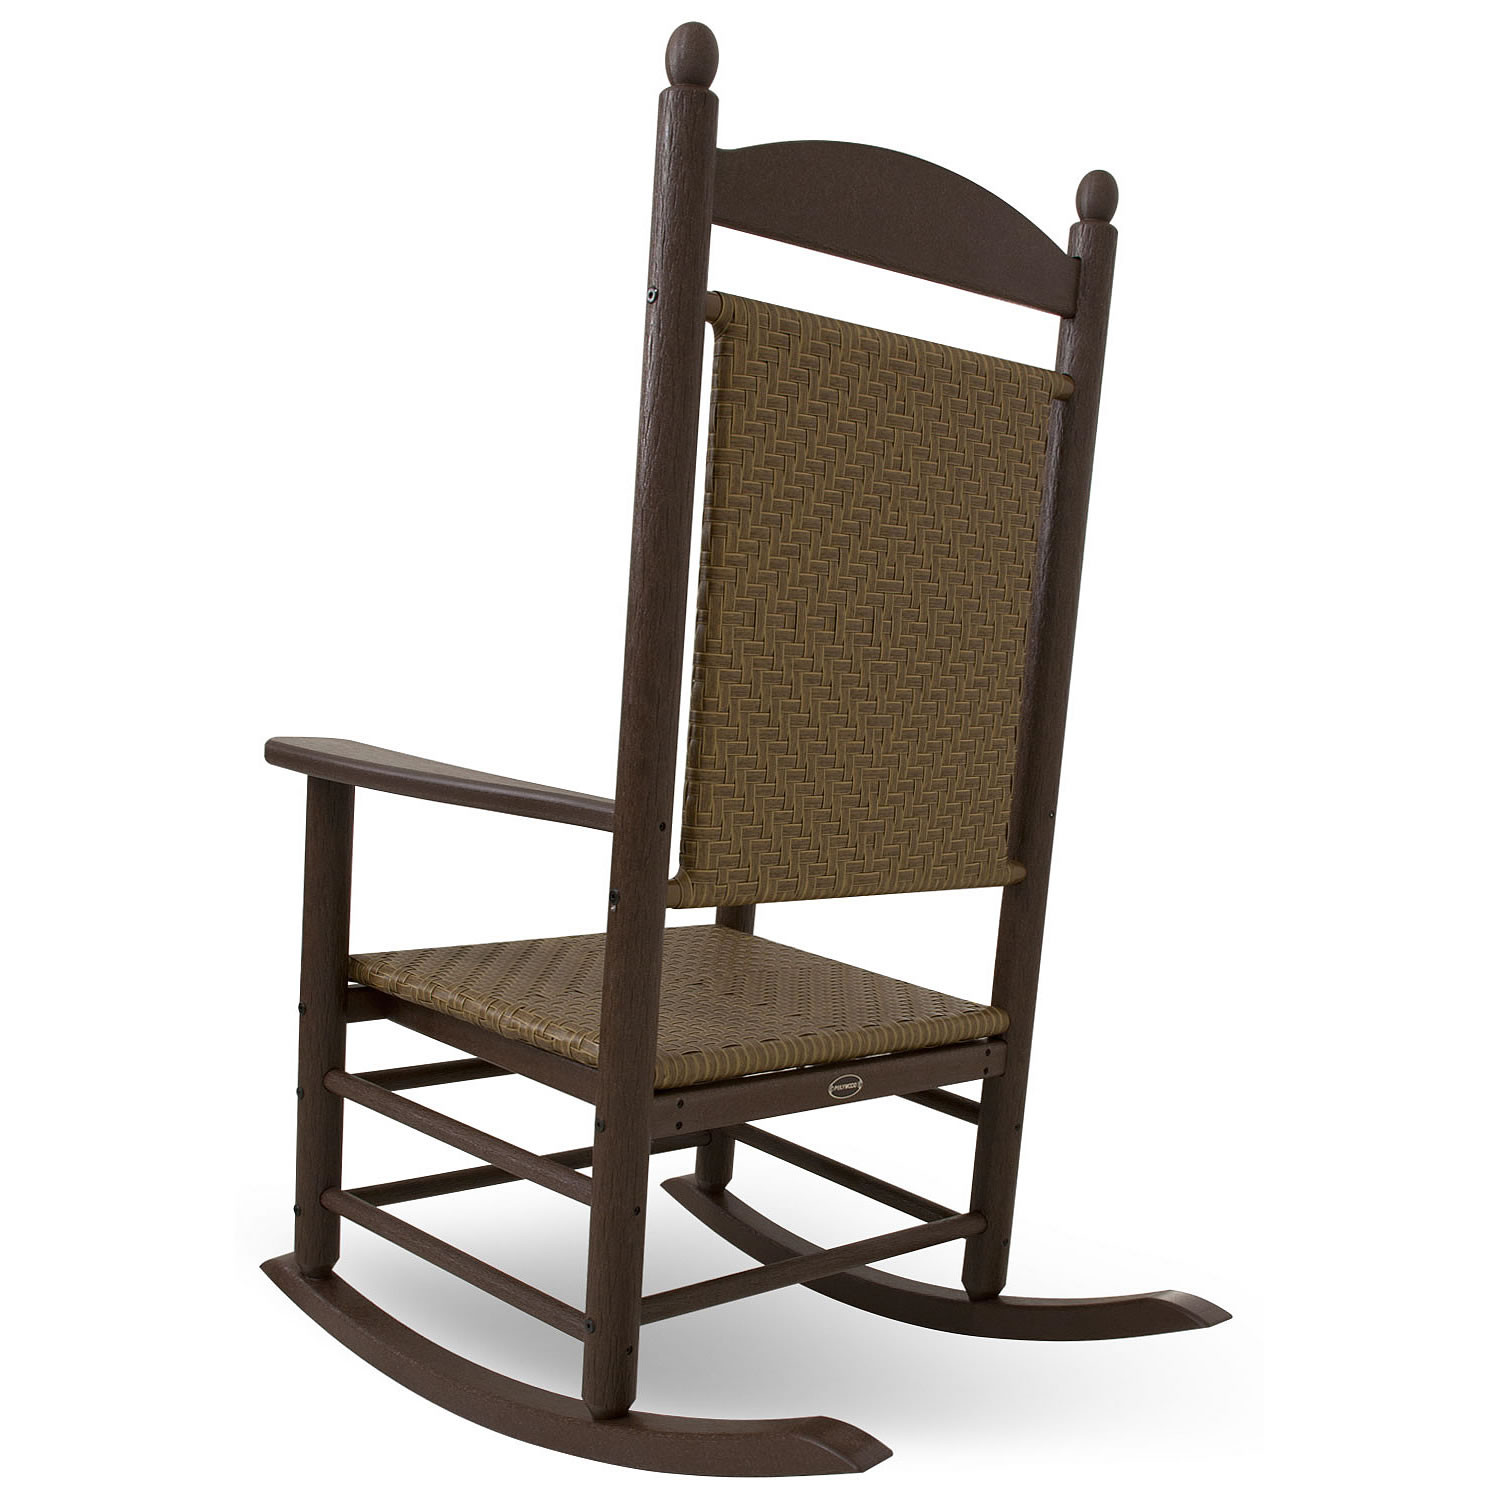 Polywood Presidential Rocker With Woven Seat And Back